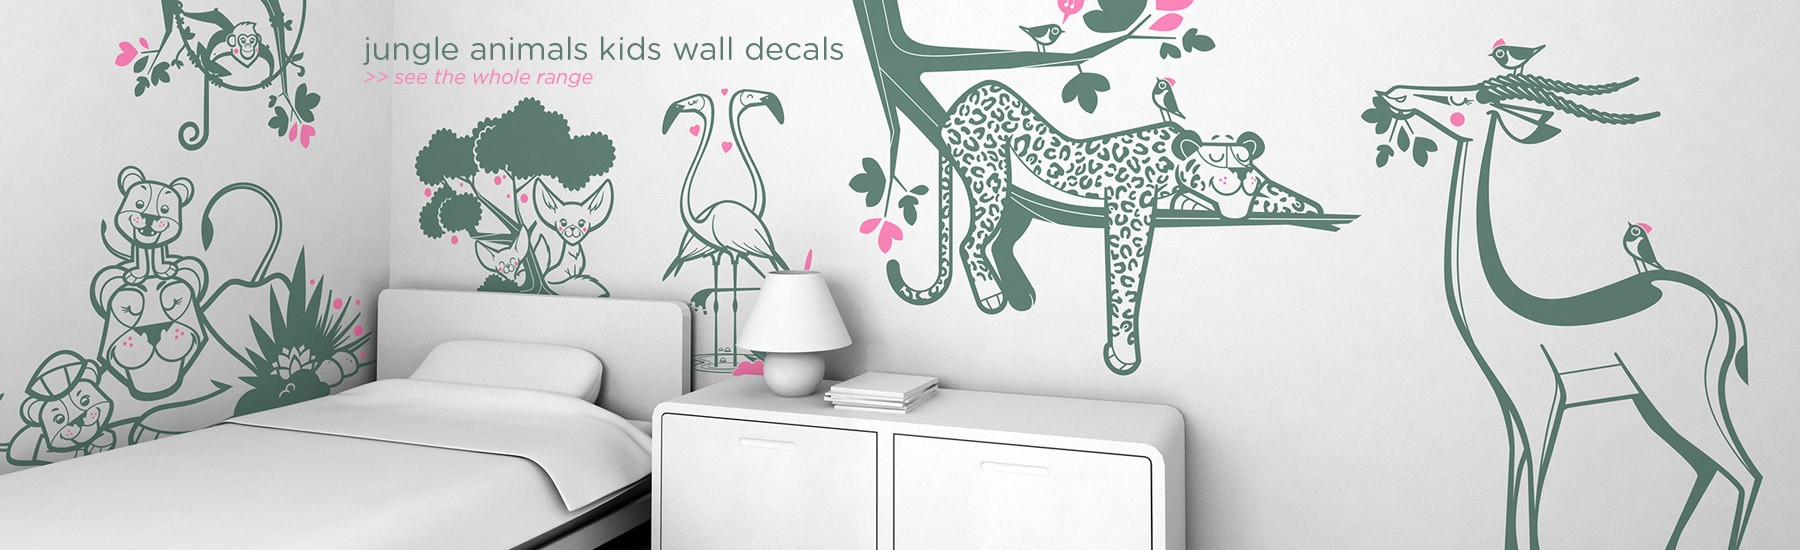 jungle-animals-decals-pack